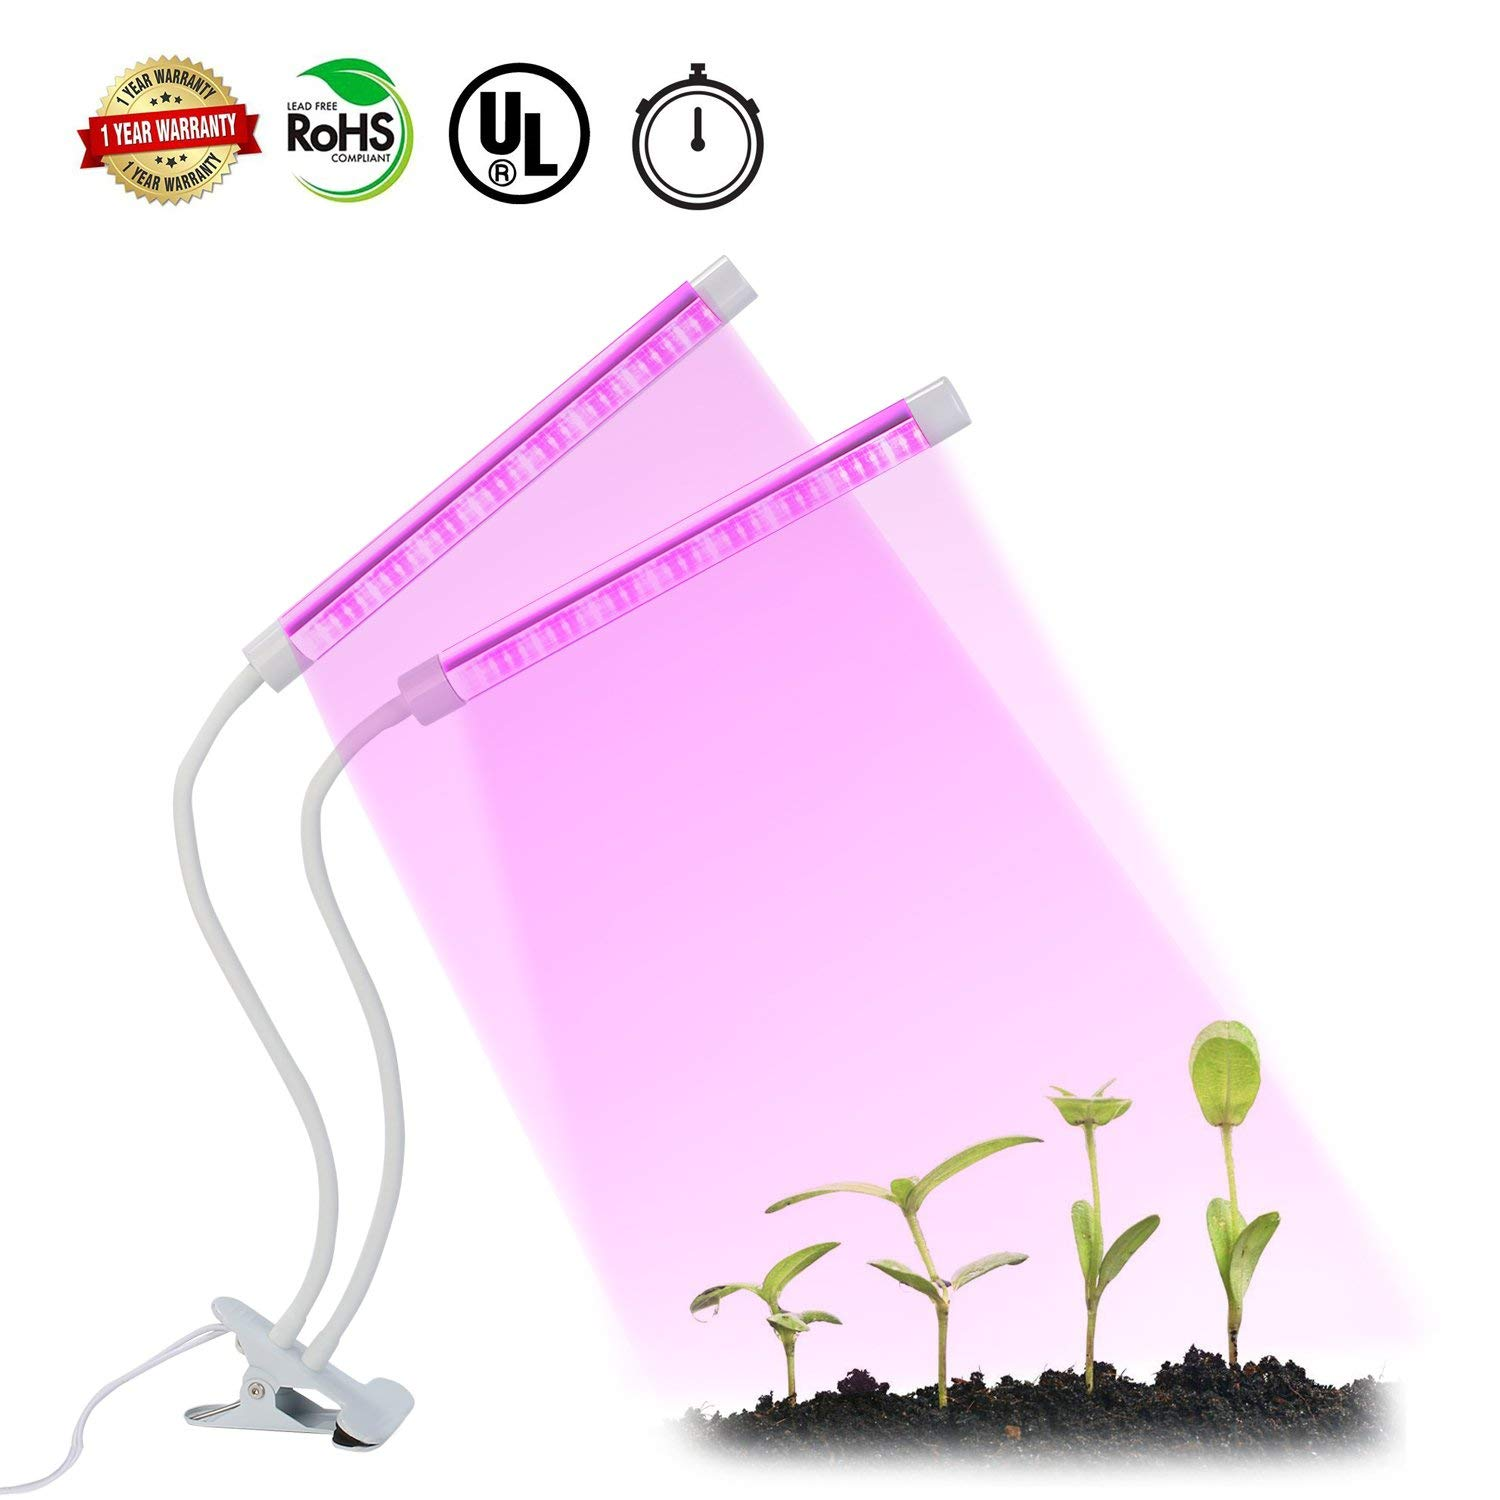 Grow Light, Grow Lights for Indoor Plant, 64 LEDs Plant Grow Light Bulb, 360° Flexible, 3/6/12H Timer, 4 Dimmable Levels& 3 Switch Modes Hydroponics Greenhouse Gardening Plant Growing Lamp